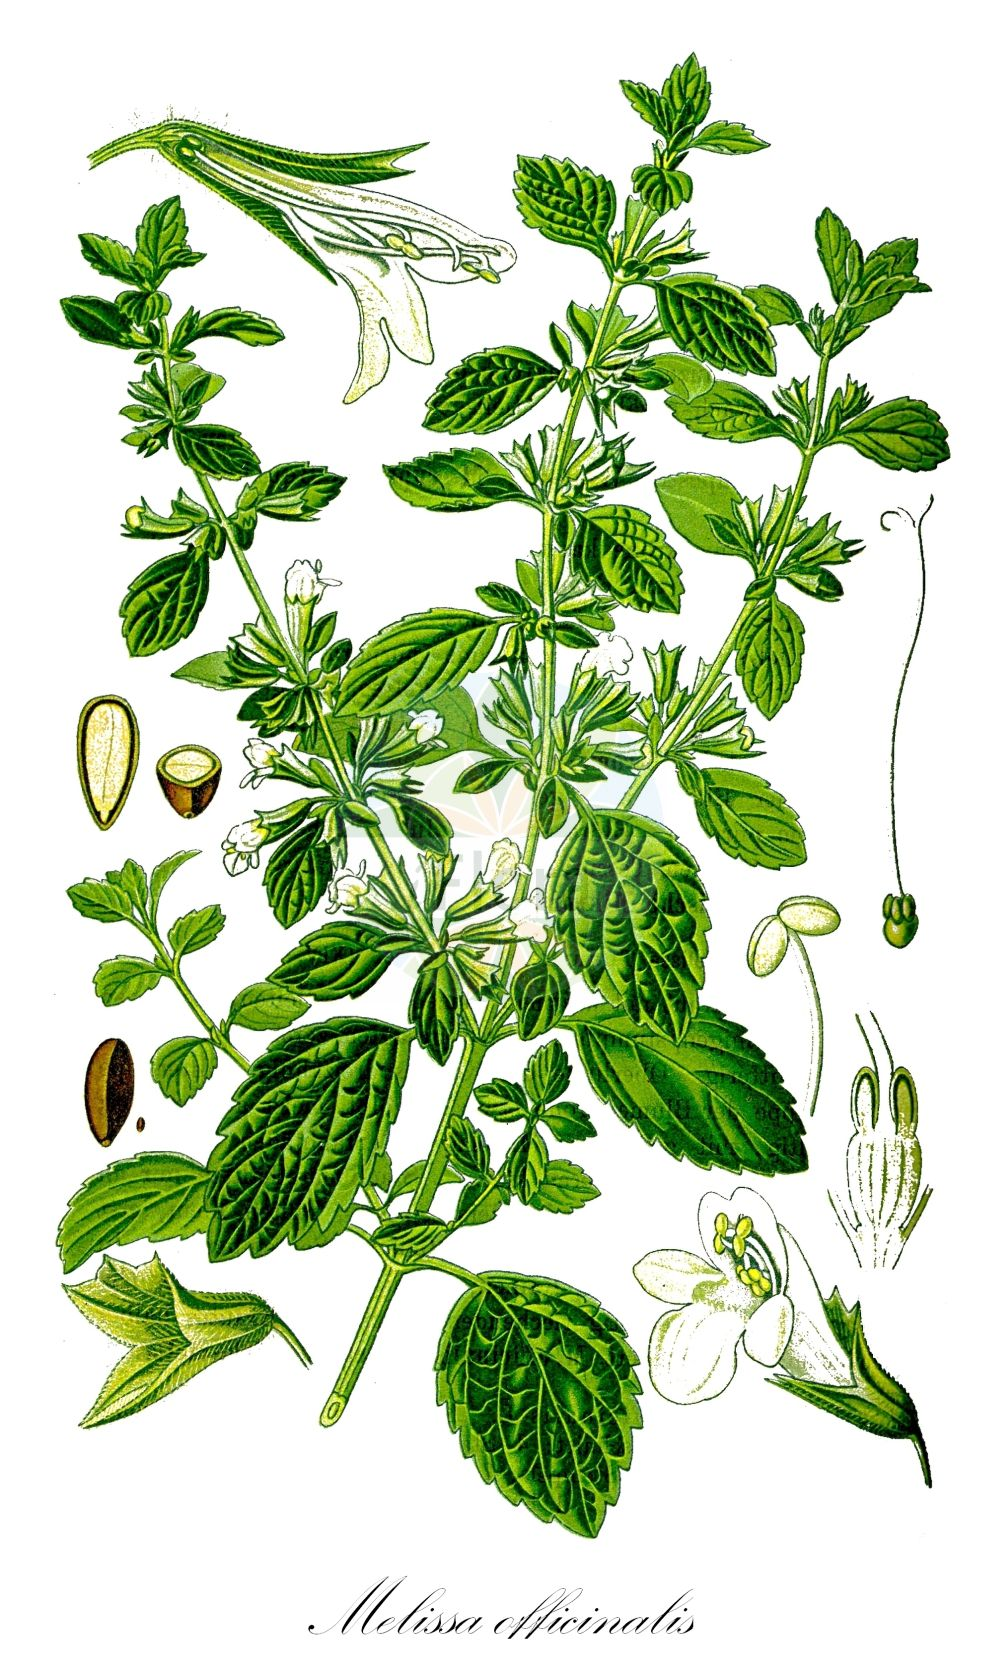 Historische Abbildung von Melissa officinalis (Zitronen-Melisse - Balm). Das Bild zeigt Blatt, Bluete, Frucht und Same. ---- Historical Drawing of Melissa officinalis (Zitronen-Melisse - Balm).The image is showing leaf, flower, fruit and seed.(Melissa officinalis,Zitronen-Melisse,Balm,Faucibarba officinalis,Mutelia officinalis,Thymus melissa,Common Bee Lemon ,Melissa,Melisse,Balm,Lamiaceae,Lippenbluetengewaechse;Lippenbluetler,Nettle family,Blatt,Bluete,Frucht,Same,leaf,flower,fruit,seed,Thomé (1885))